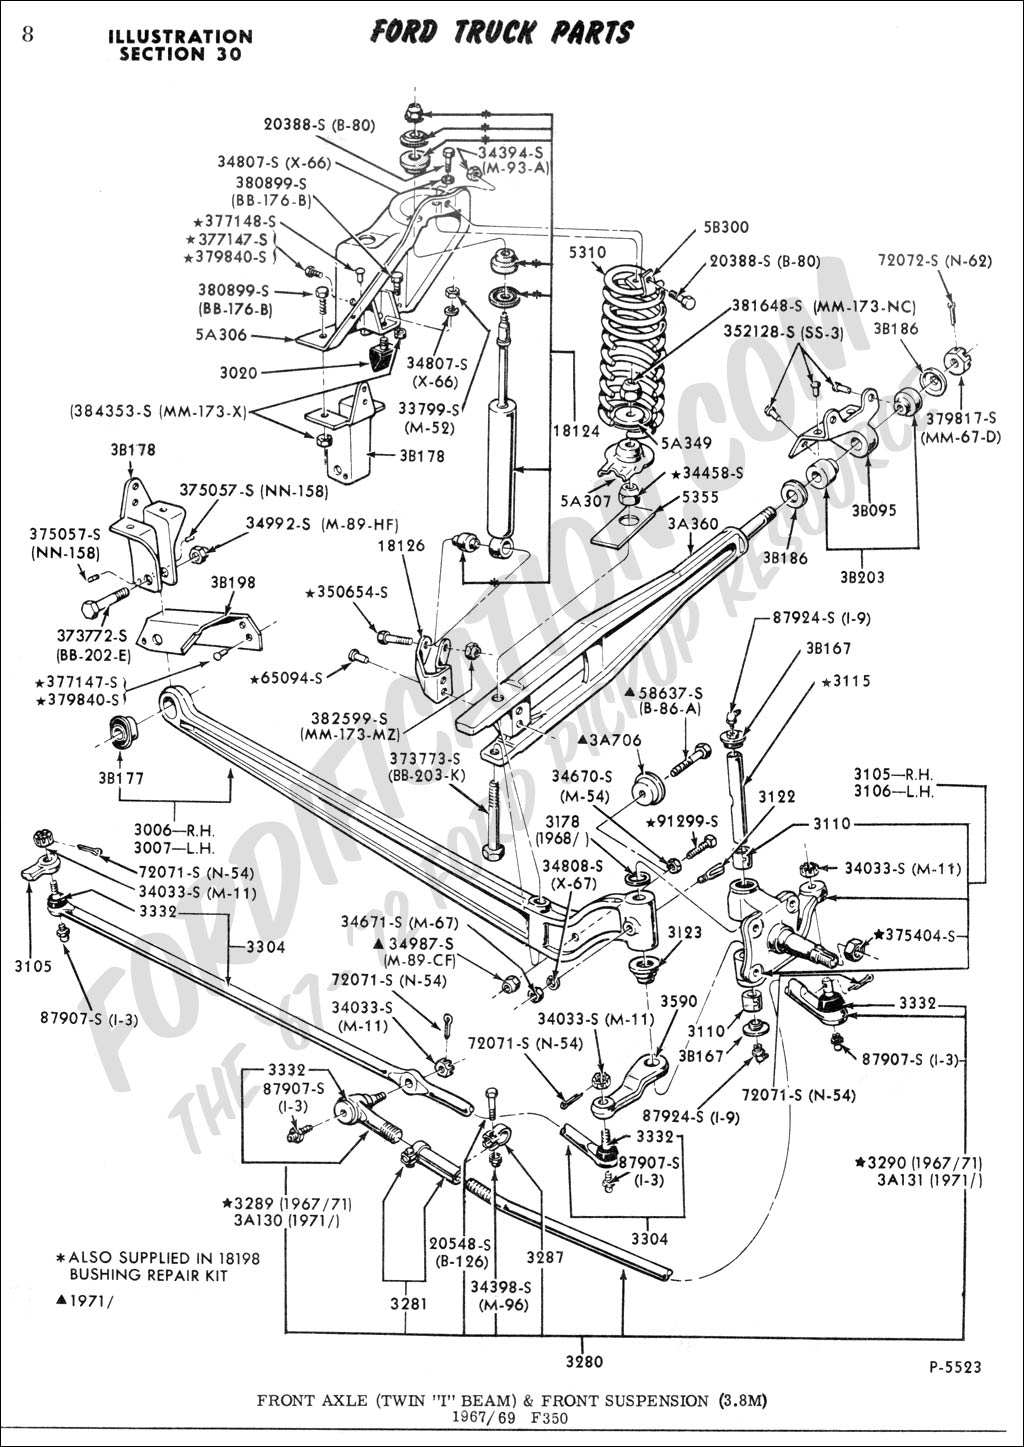 1999 Ford Ranger Engine Diagram Http Wwwjustanswercom Ford 76jrr